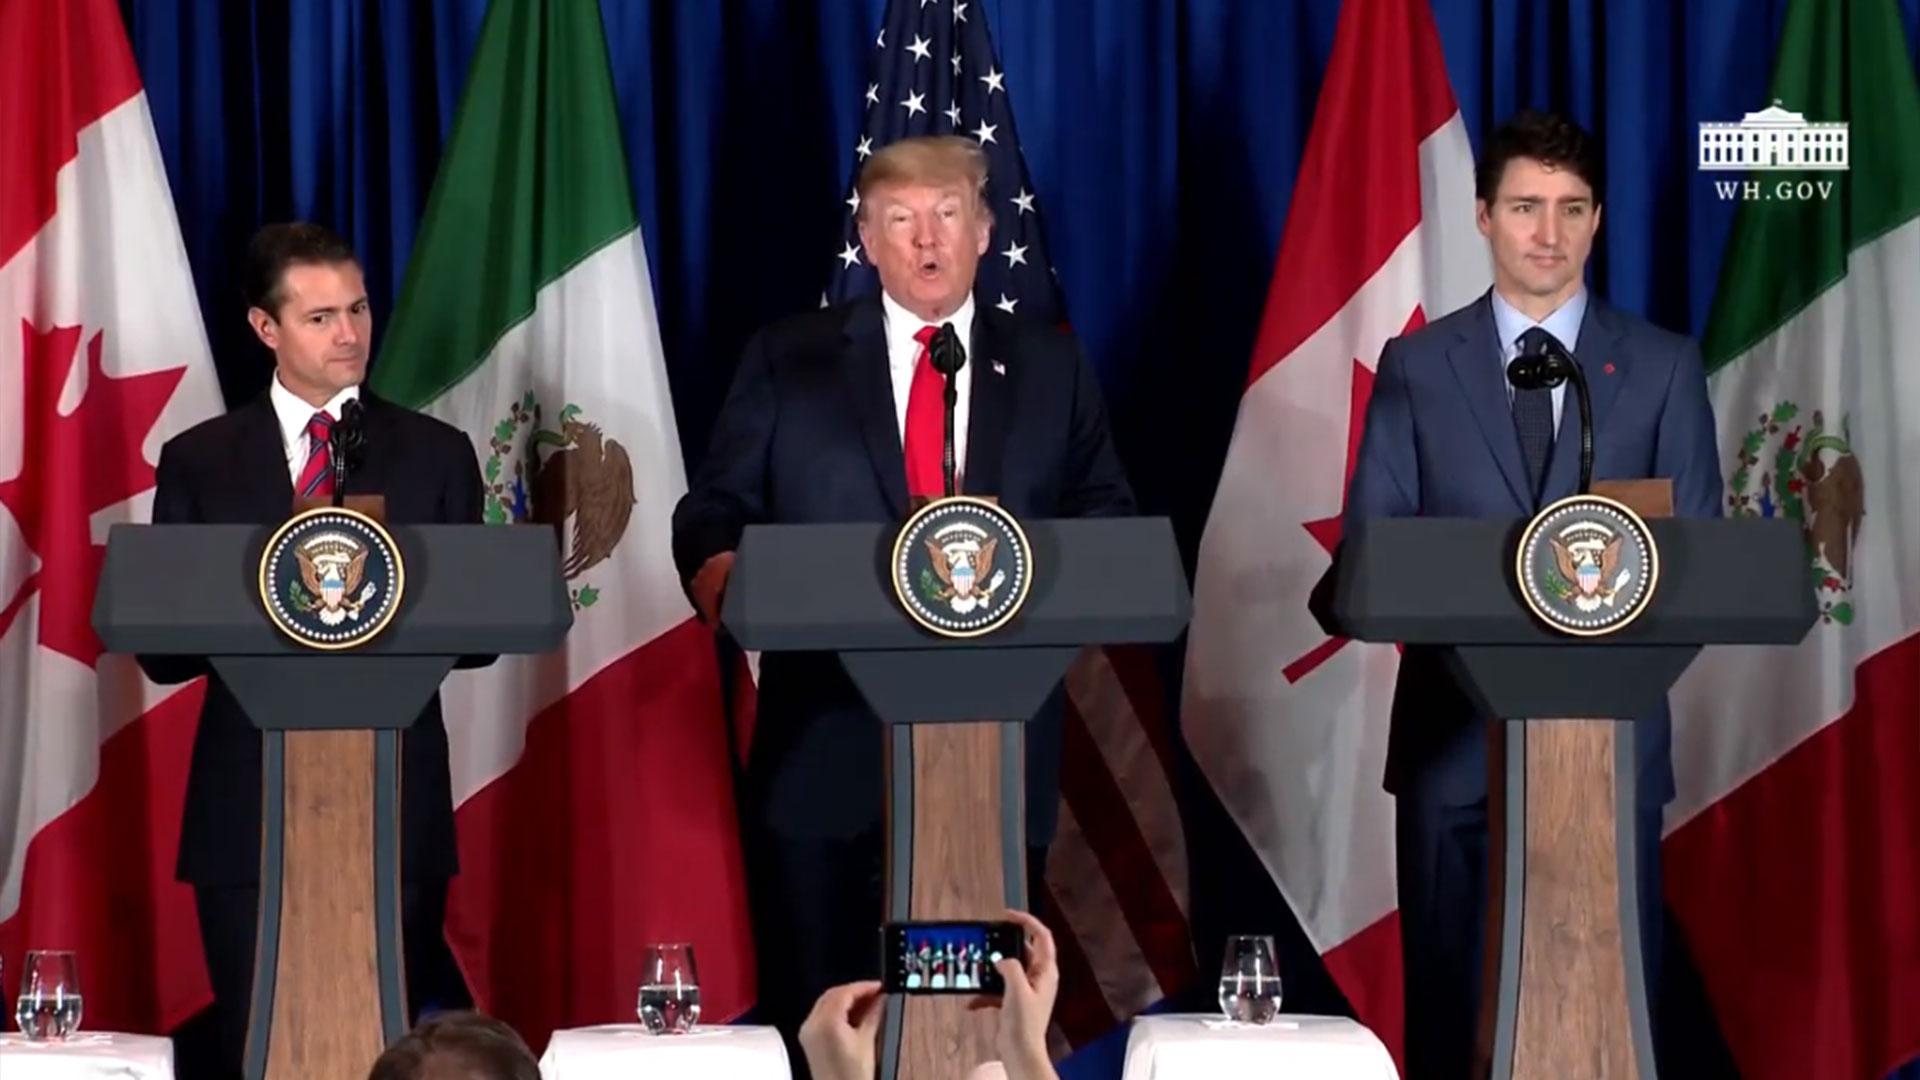 """Trump calls the signing of the new trade agreement """"an historic occasion."""" And despite disputes between them, says Pena Nieto and Trudeau have become his """"great friends."""""""